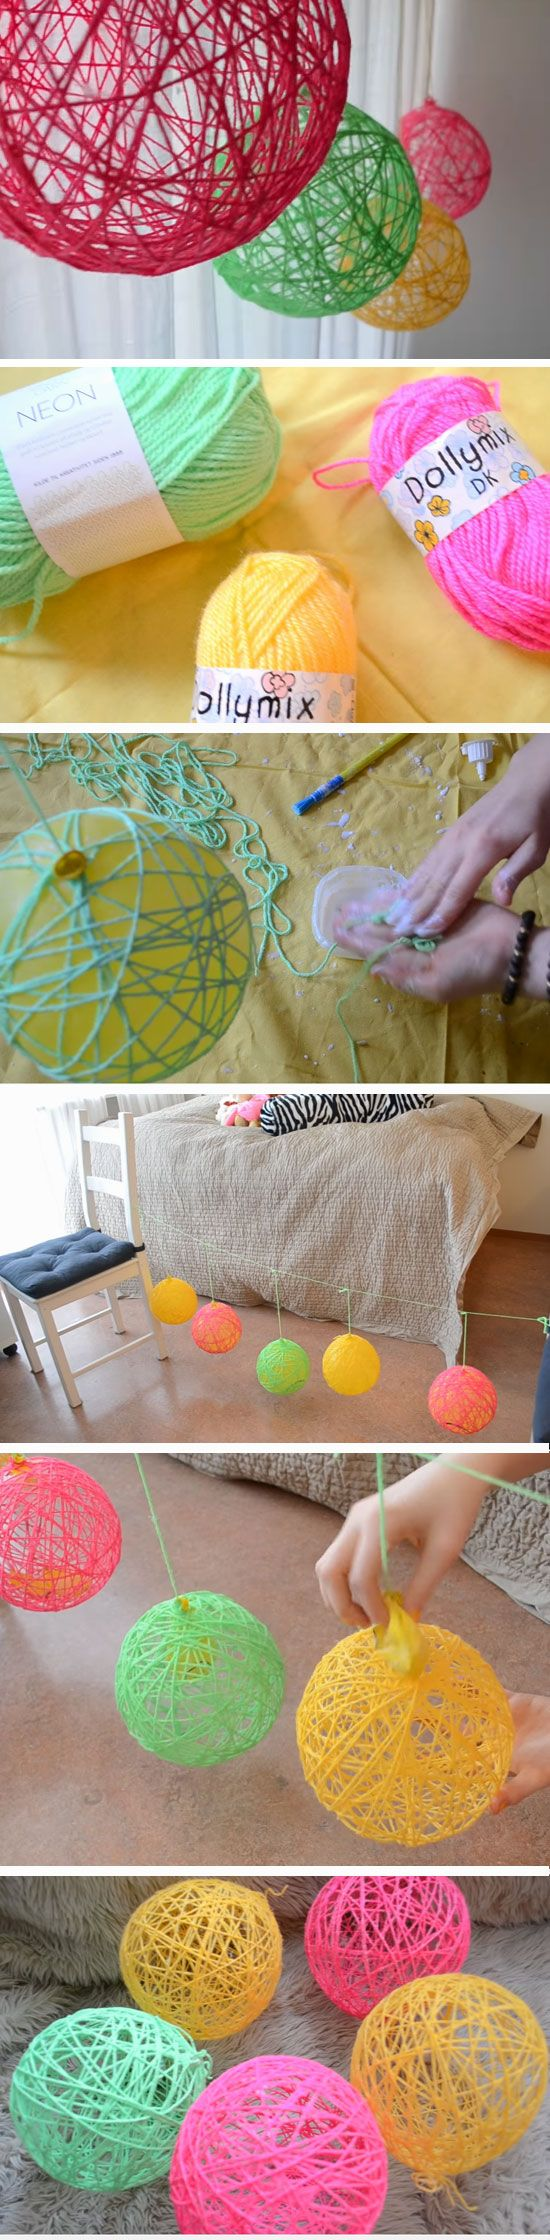 18 super easy diy spring room decor ideas | summer crafts, room